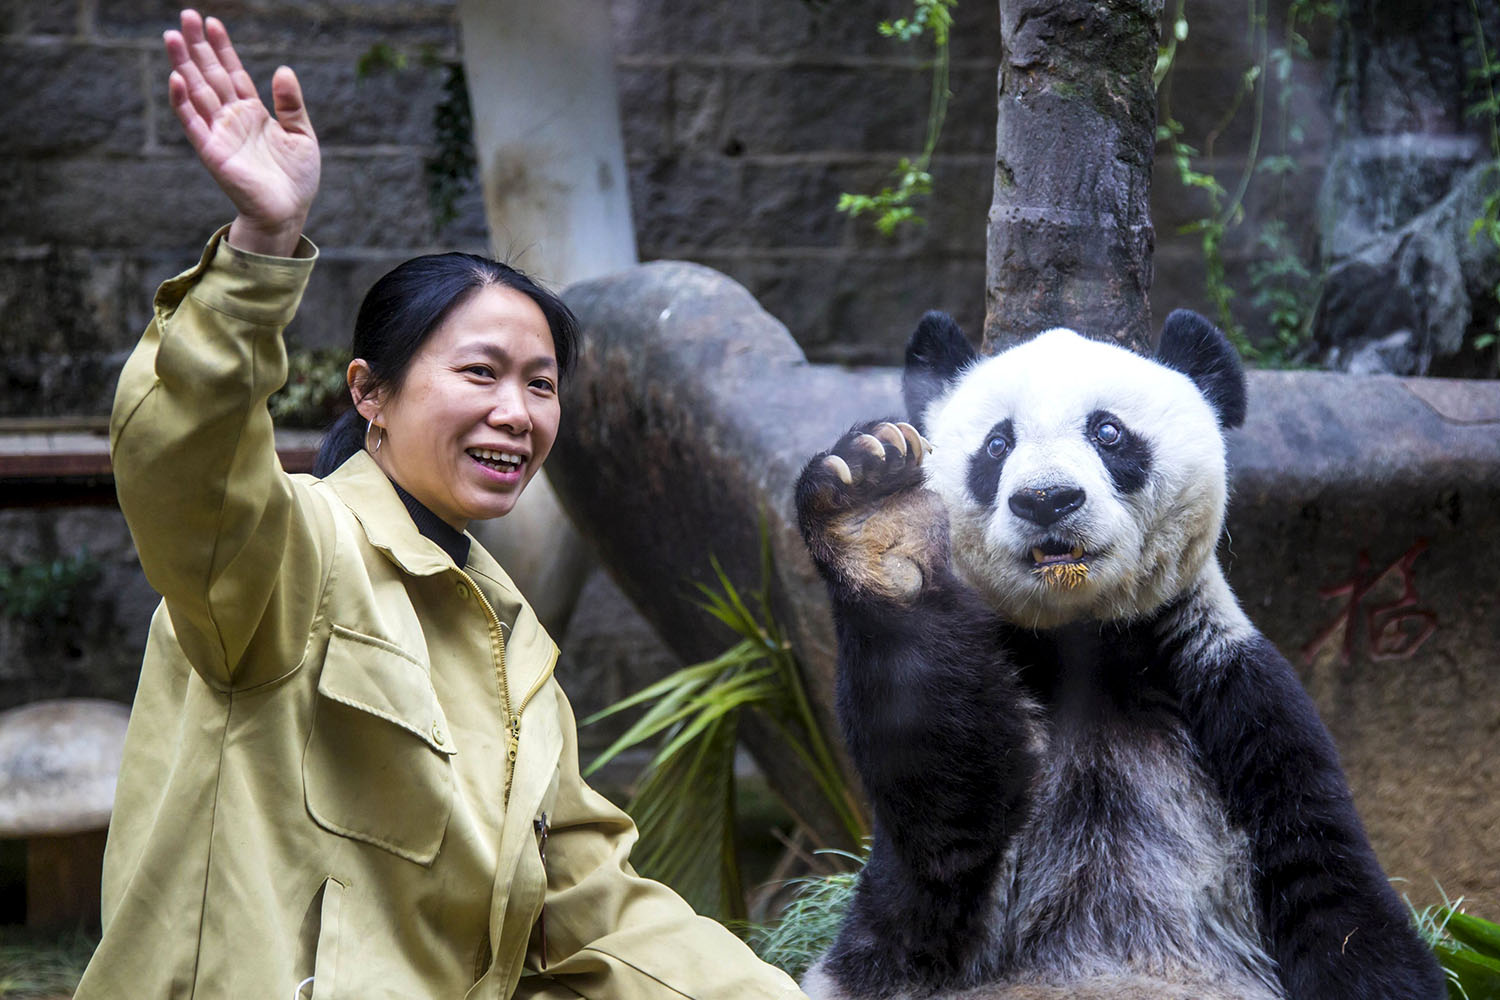 Giant panda Basi imitates its keeper to wave at visitors on its 35th birthday, at a giant panda research centre in Fuzhou